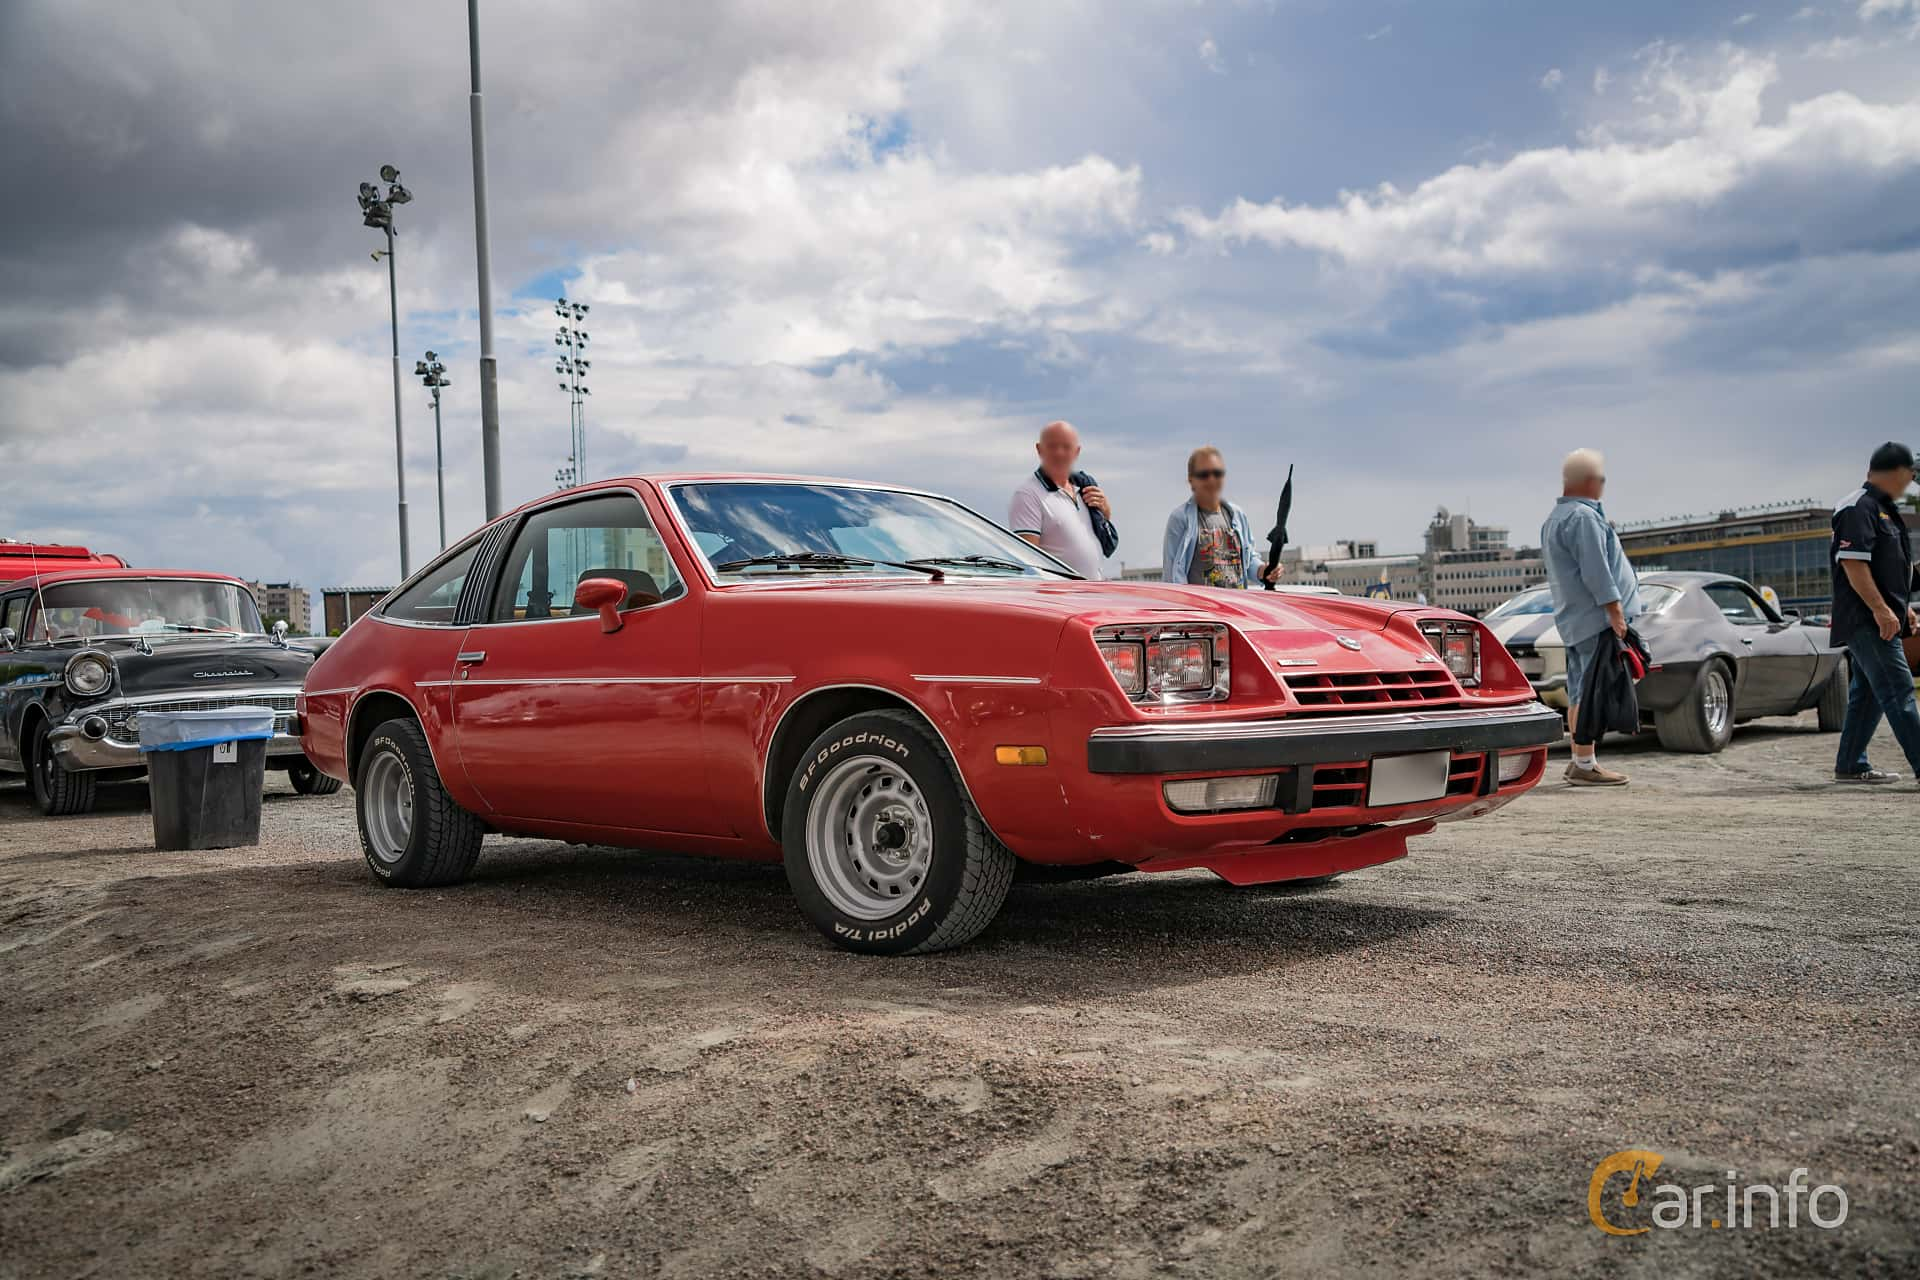 Chevrolet Monza Coupé 5.7 V8 Hydra-Matic, 126hp, 1975 at Wheels Nationals Stockholm 2017